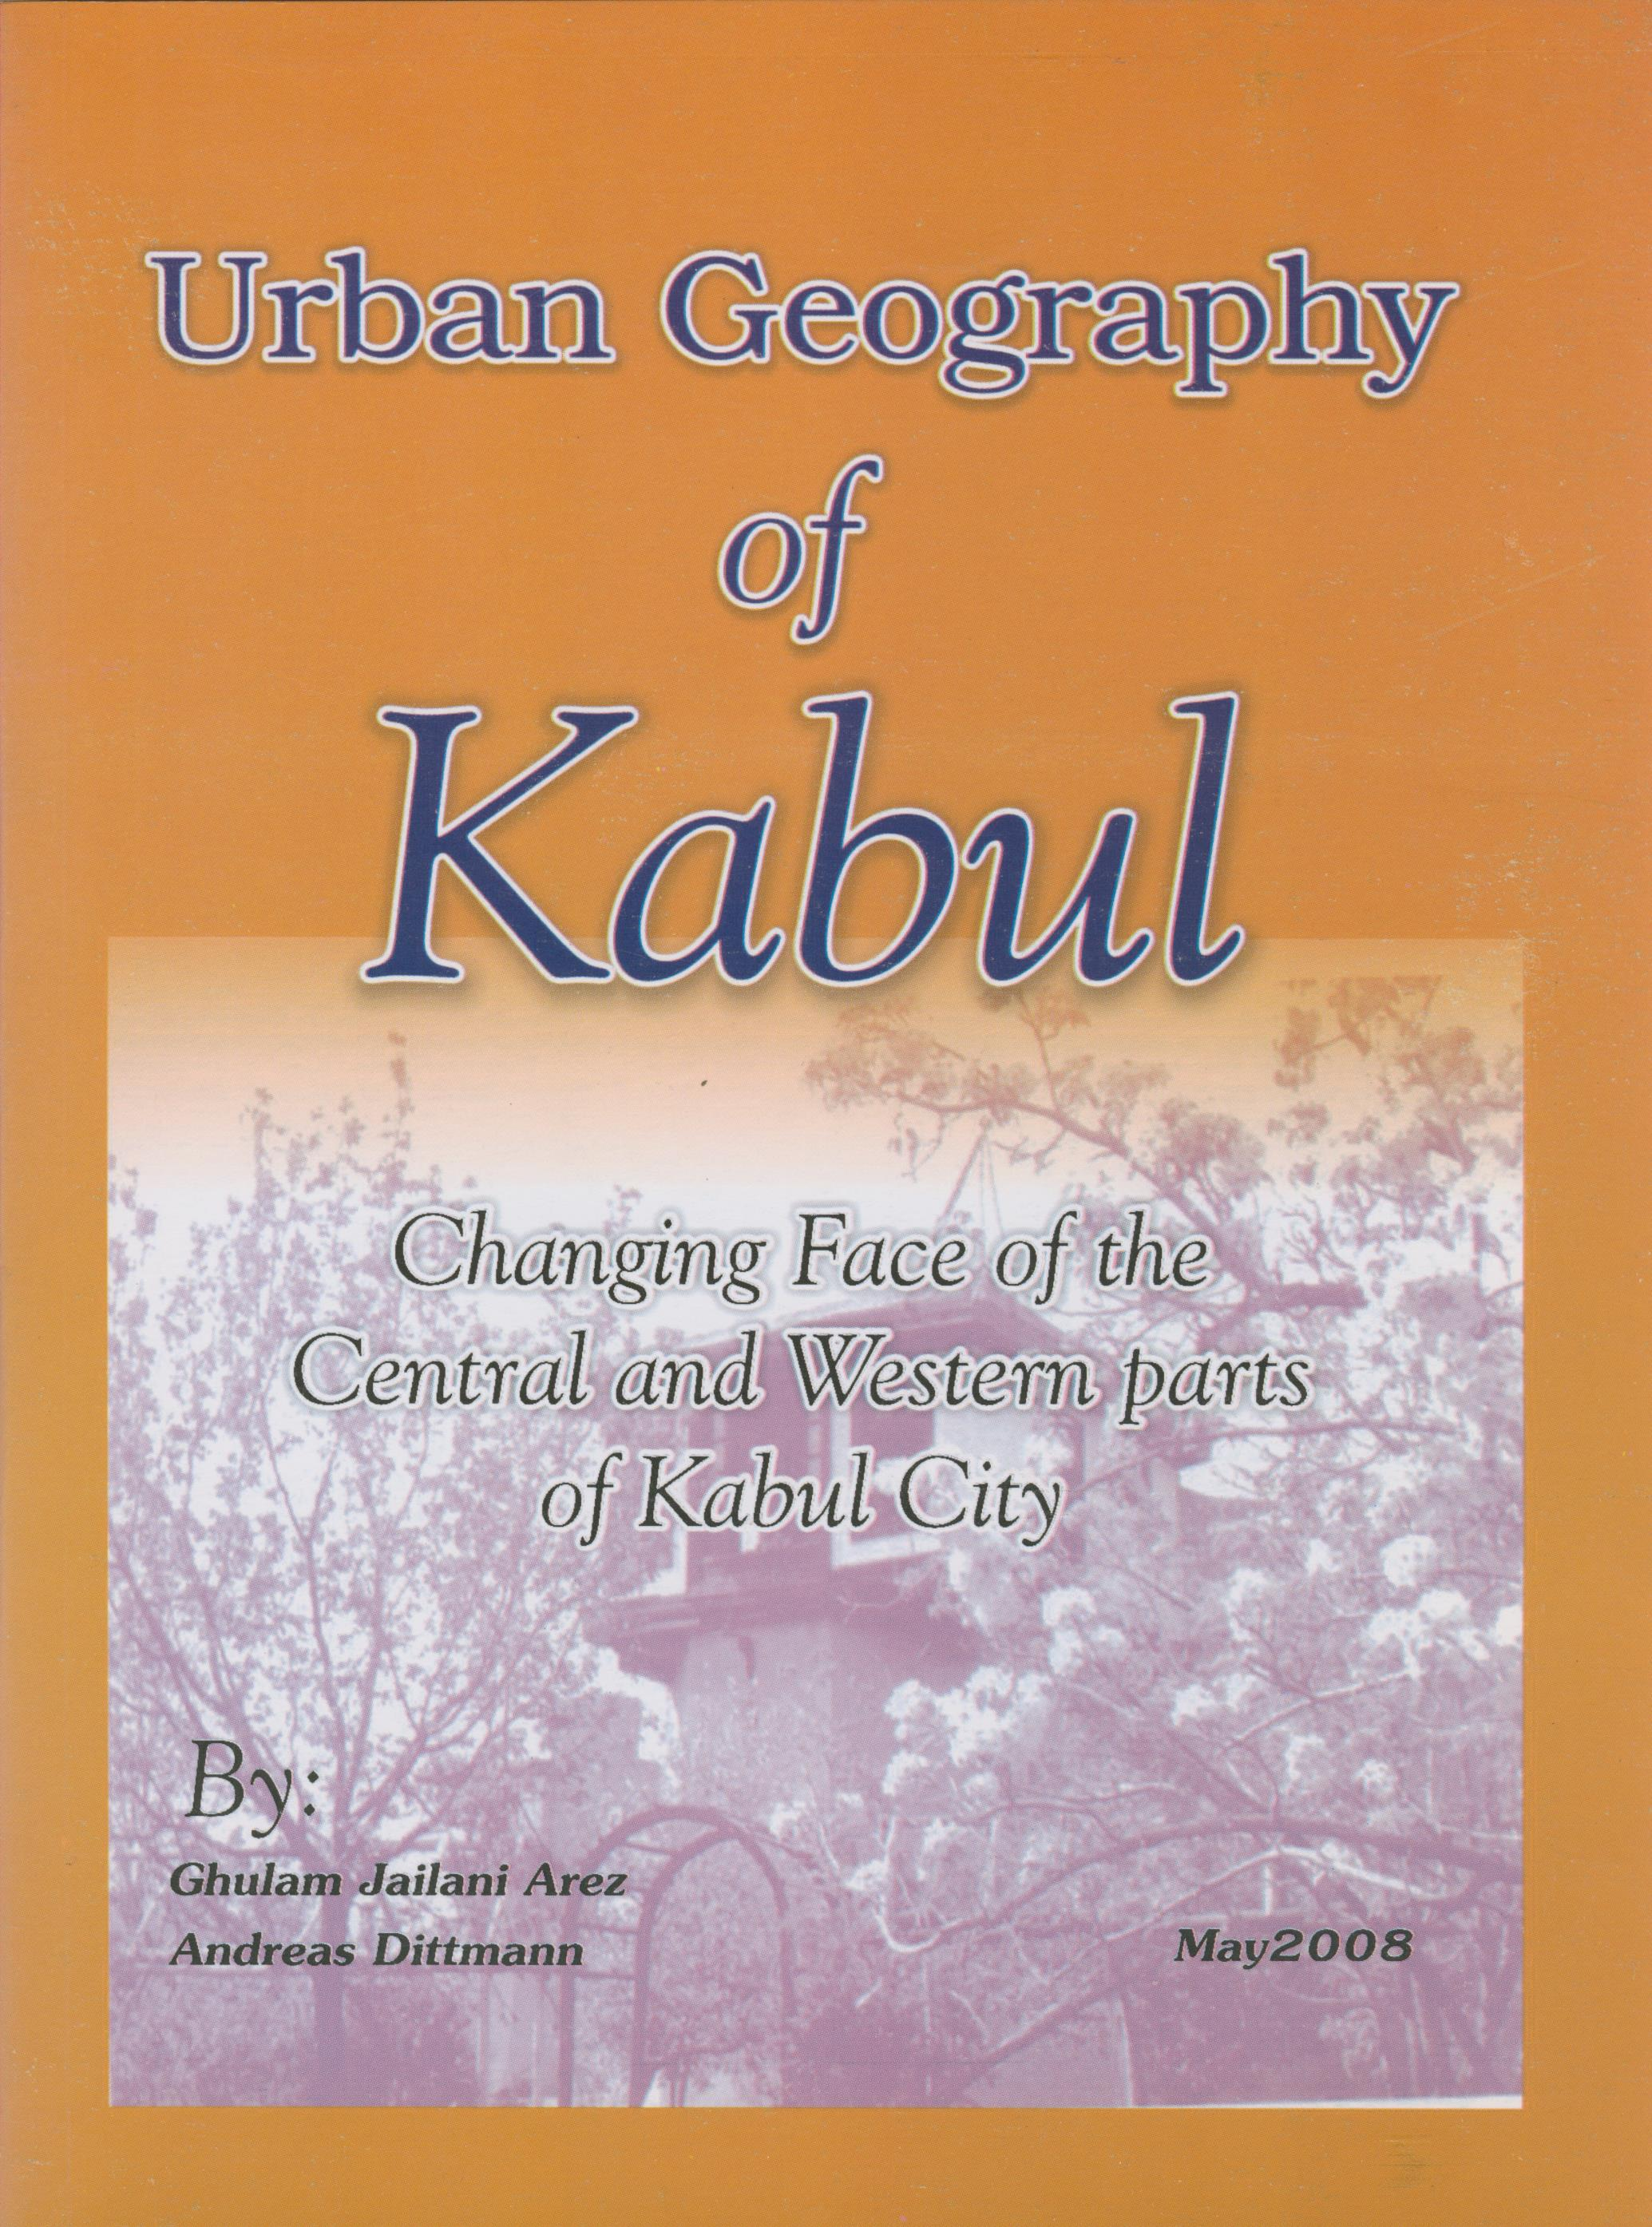 urban geography of kabul cover